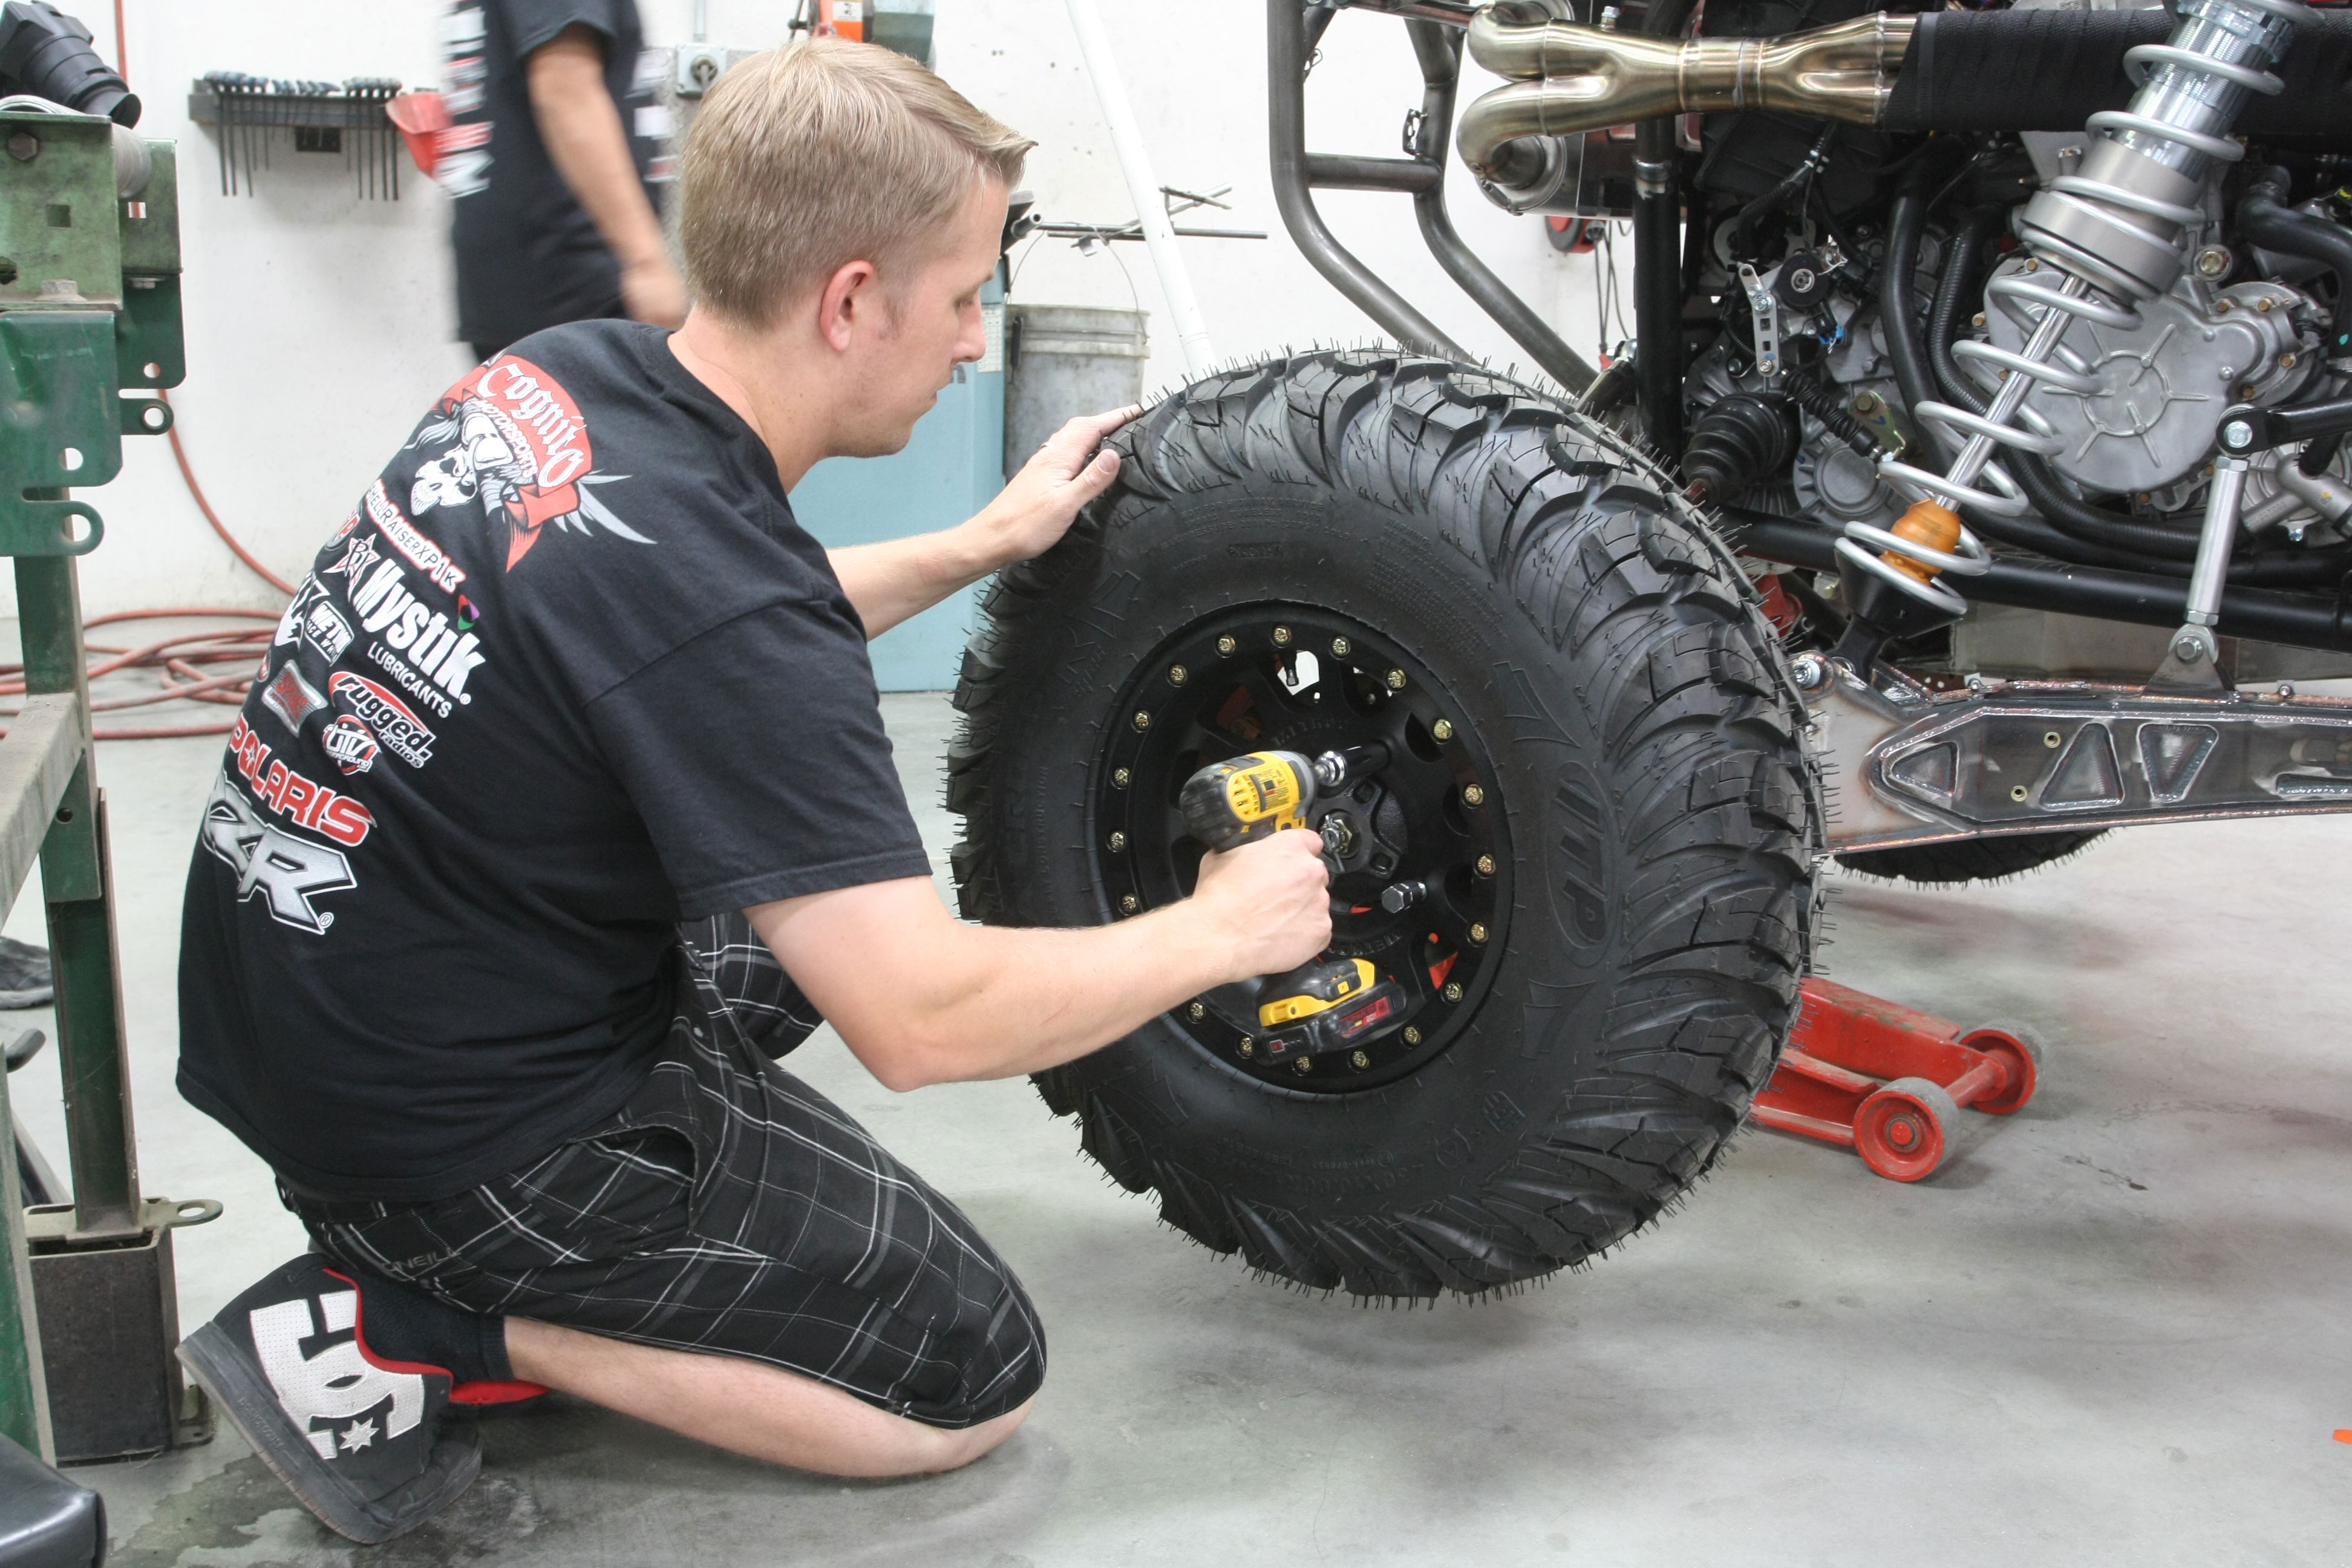 Method Race Wheels has gotten into the UTV end in a big way with their 401 UTV Bead lock. The wheel includes a forged 6061 bead lock ring along with Grade 8 Zinc plated mounting hardware. Mounted to them are ITP Ultracross R Spec tires. They feature a unique, multi-surface, non-directional tread design improves off-road traction and are constructed with an 8-ply radial design.